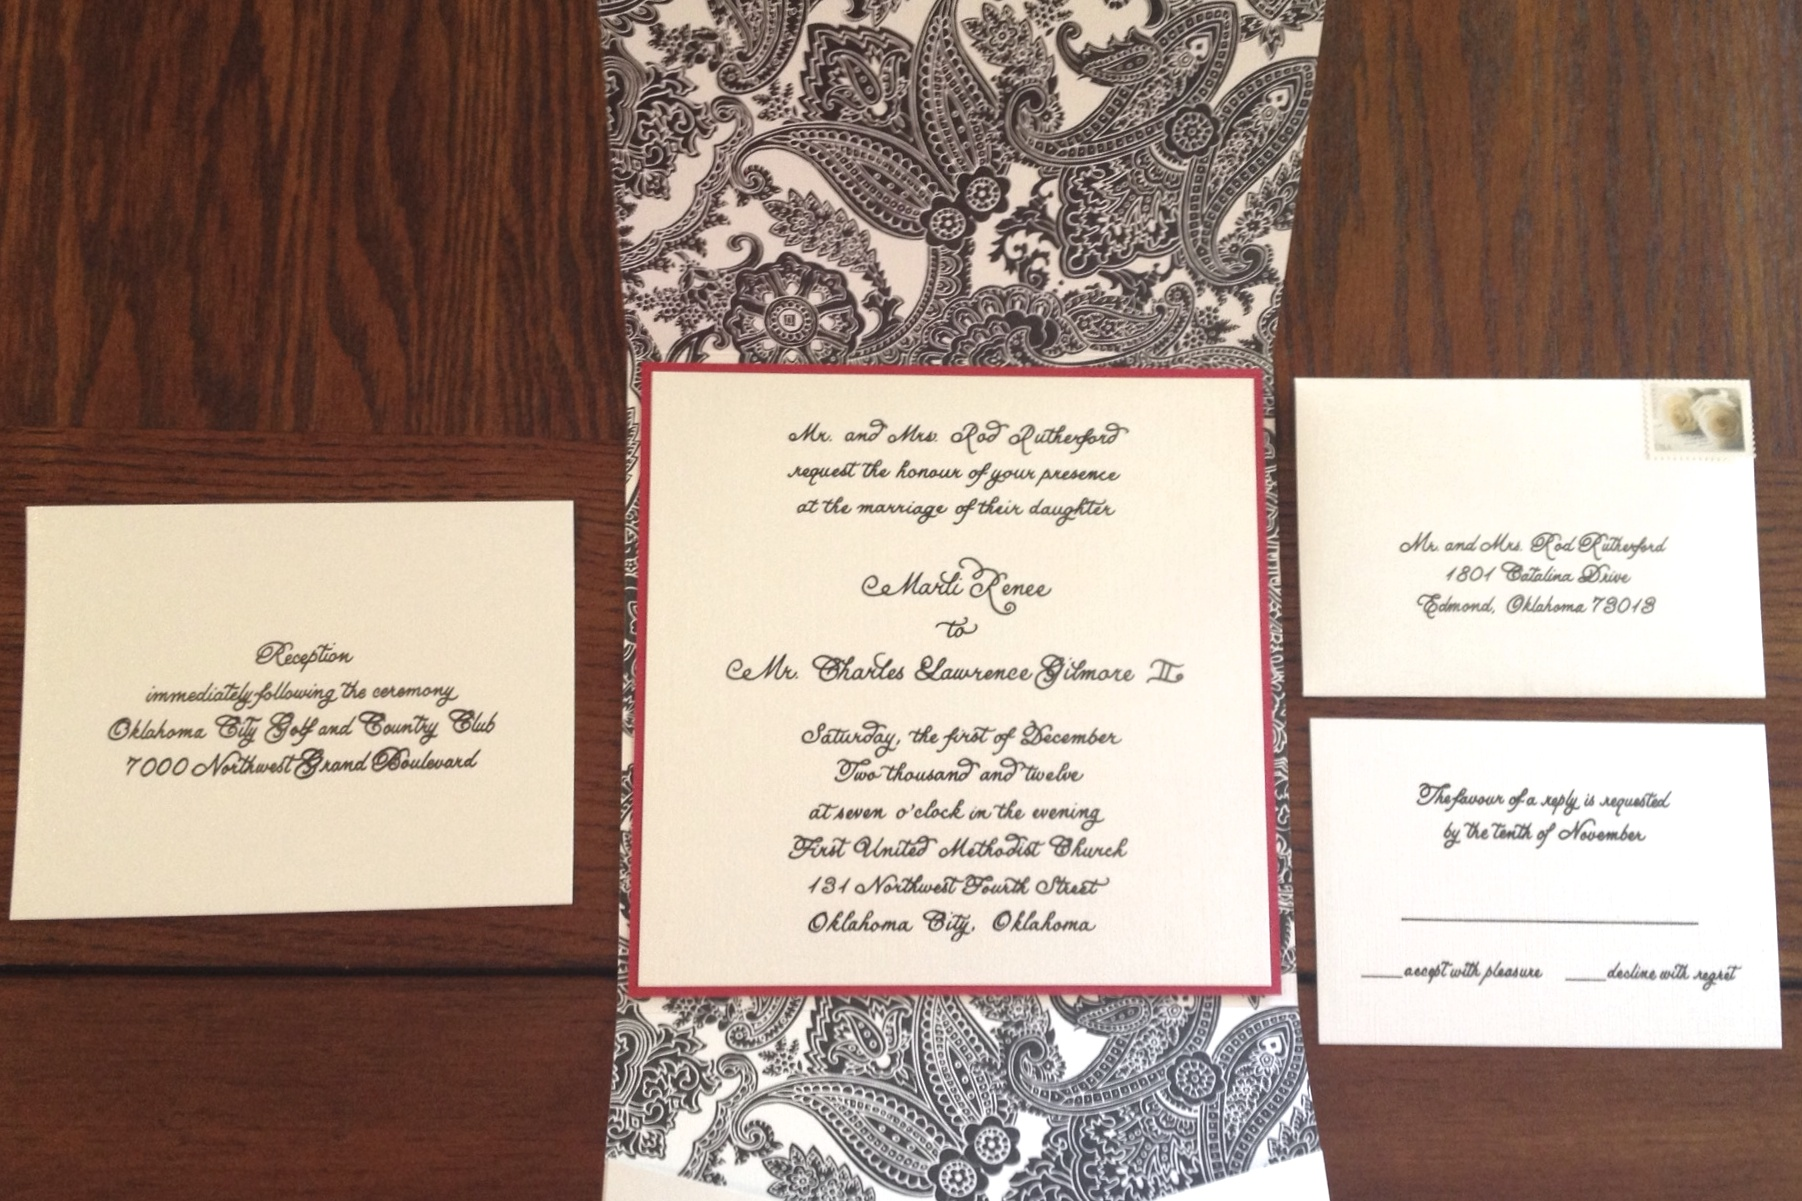 Original Wedding Invitation Ensemble.jpg